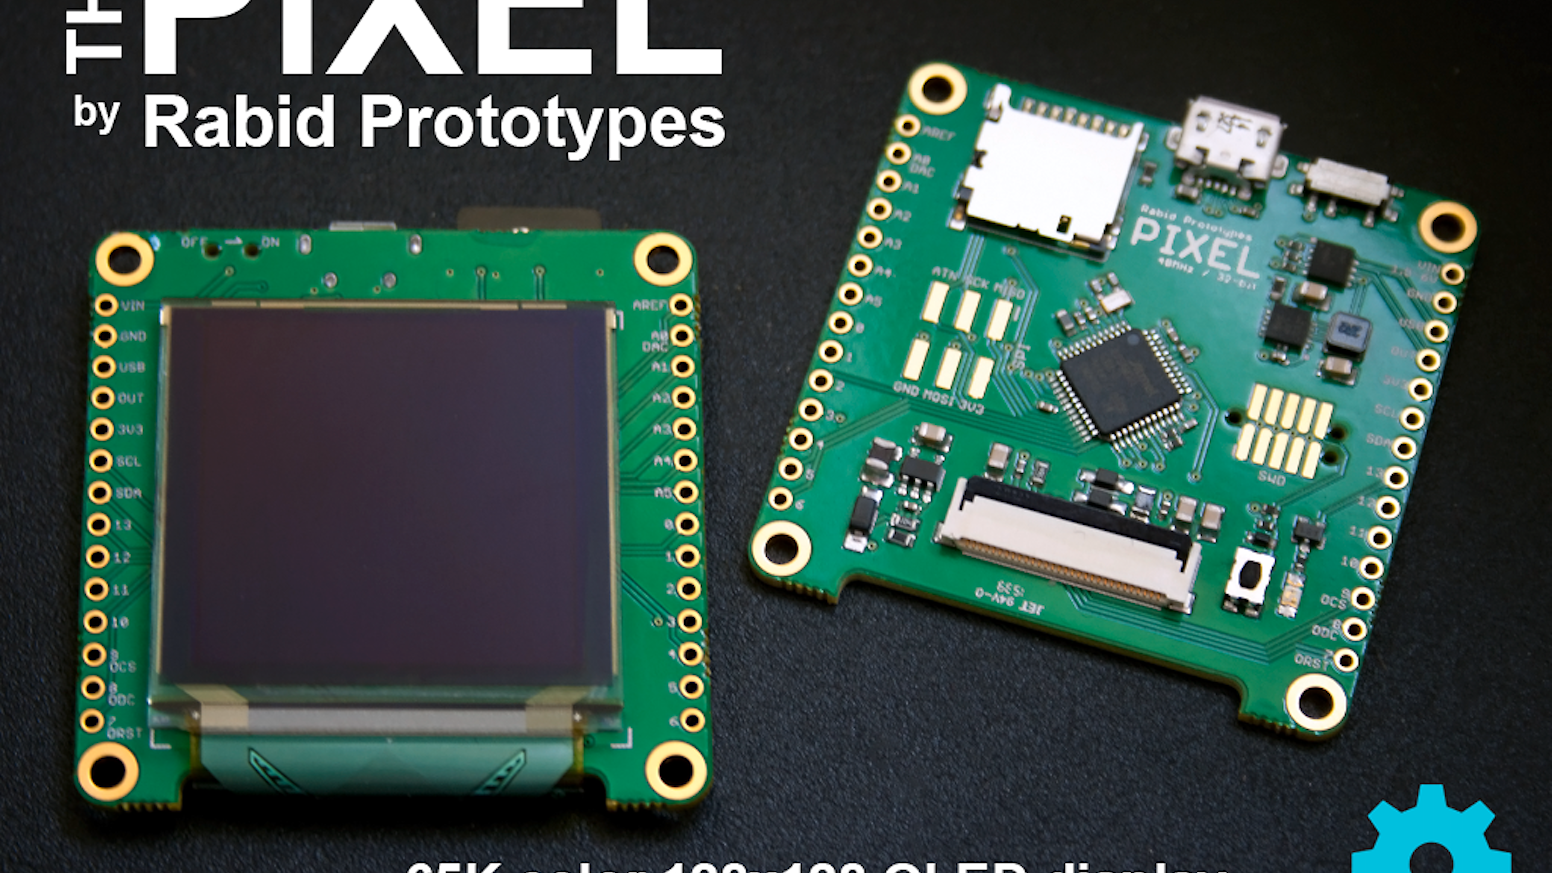 Pixel - The Arduino compatible smart display! by Rabid